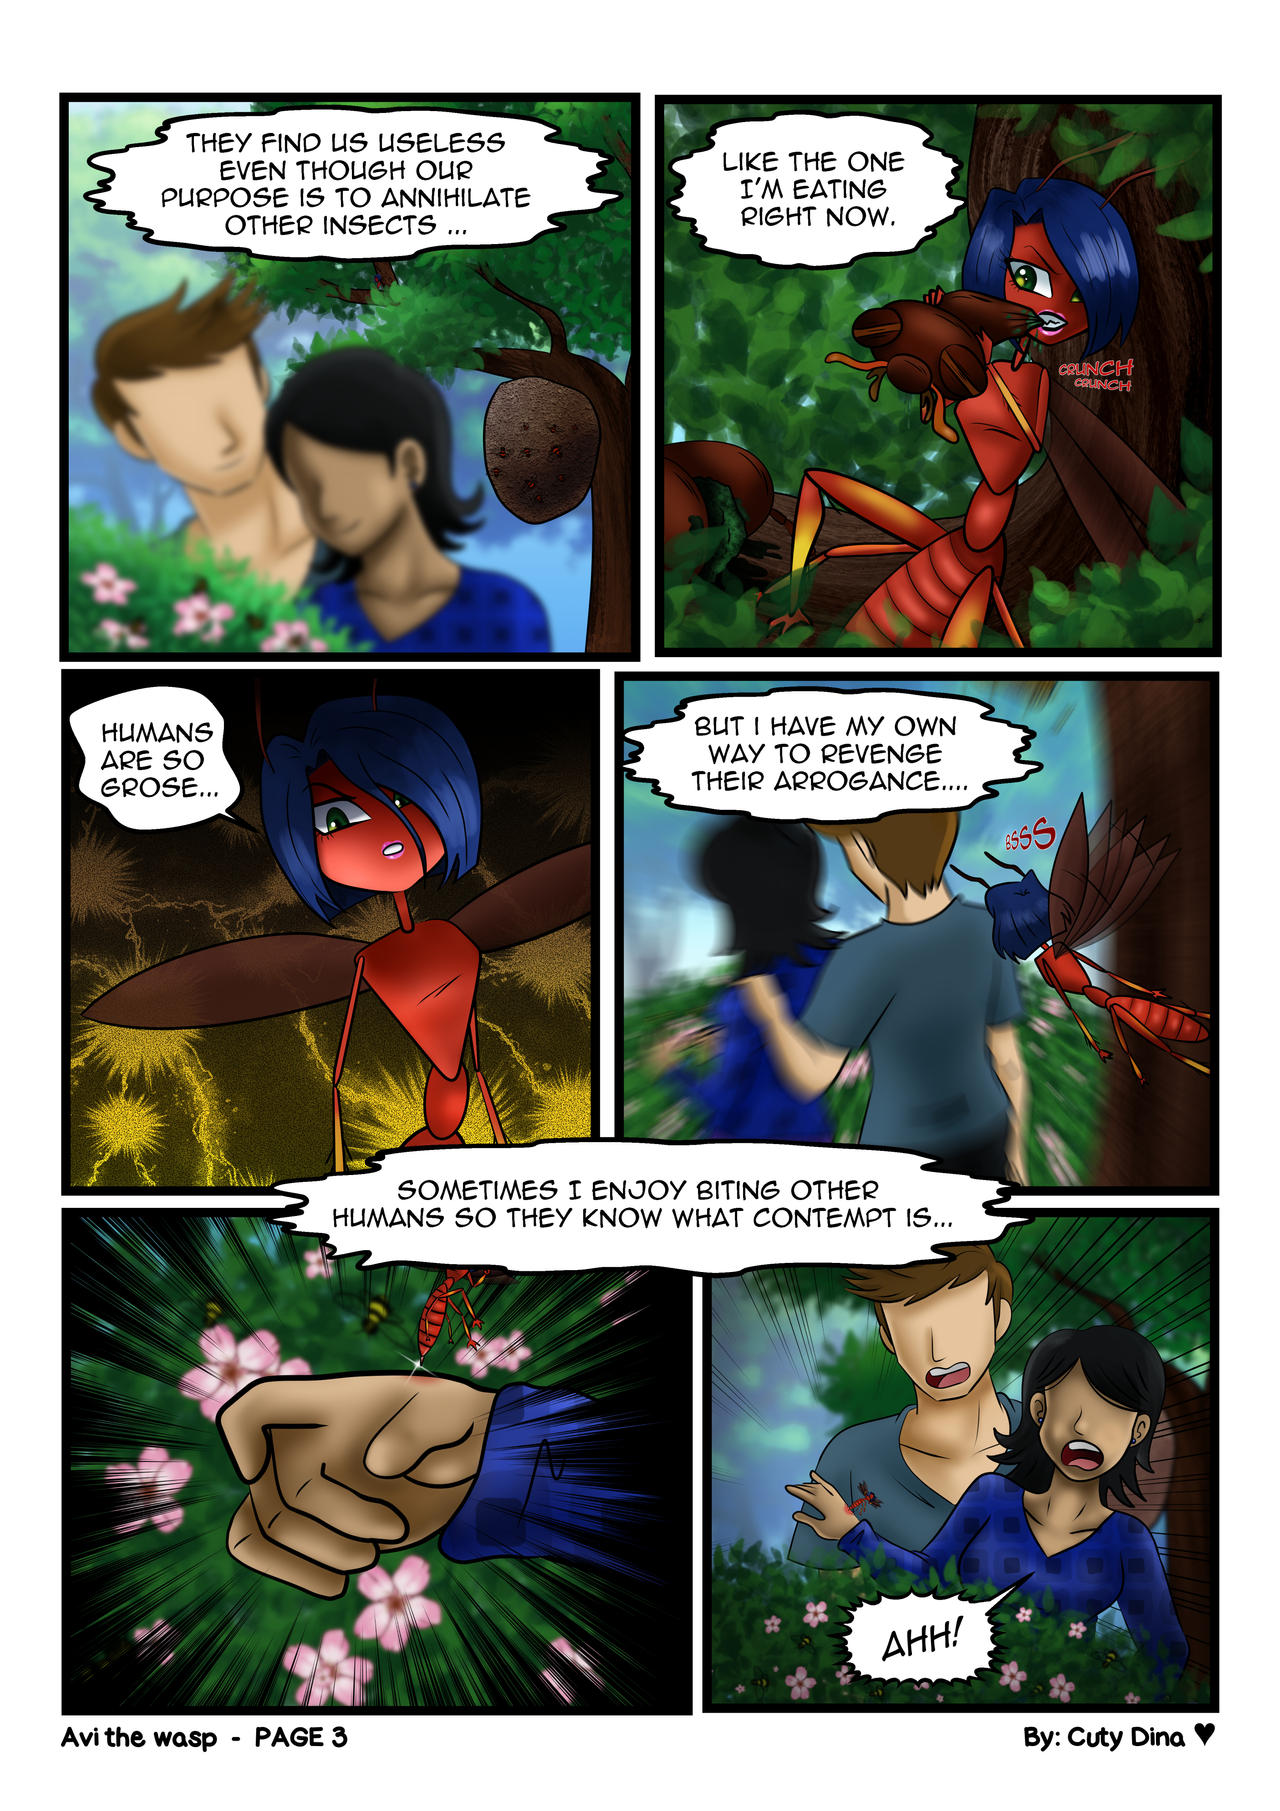 Avi the wasp - Page03